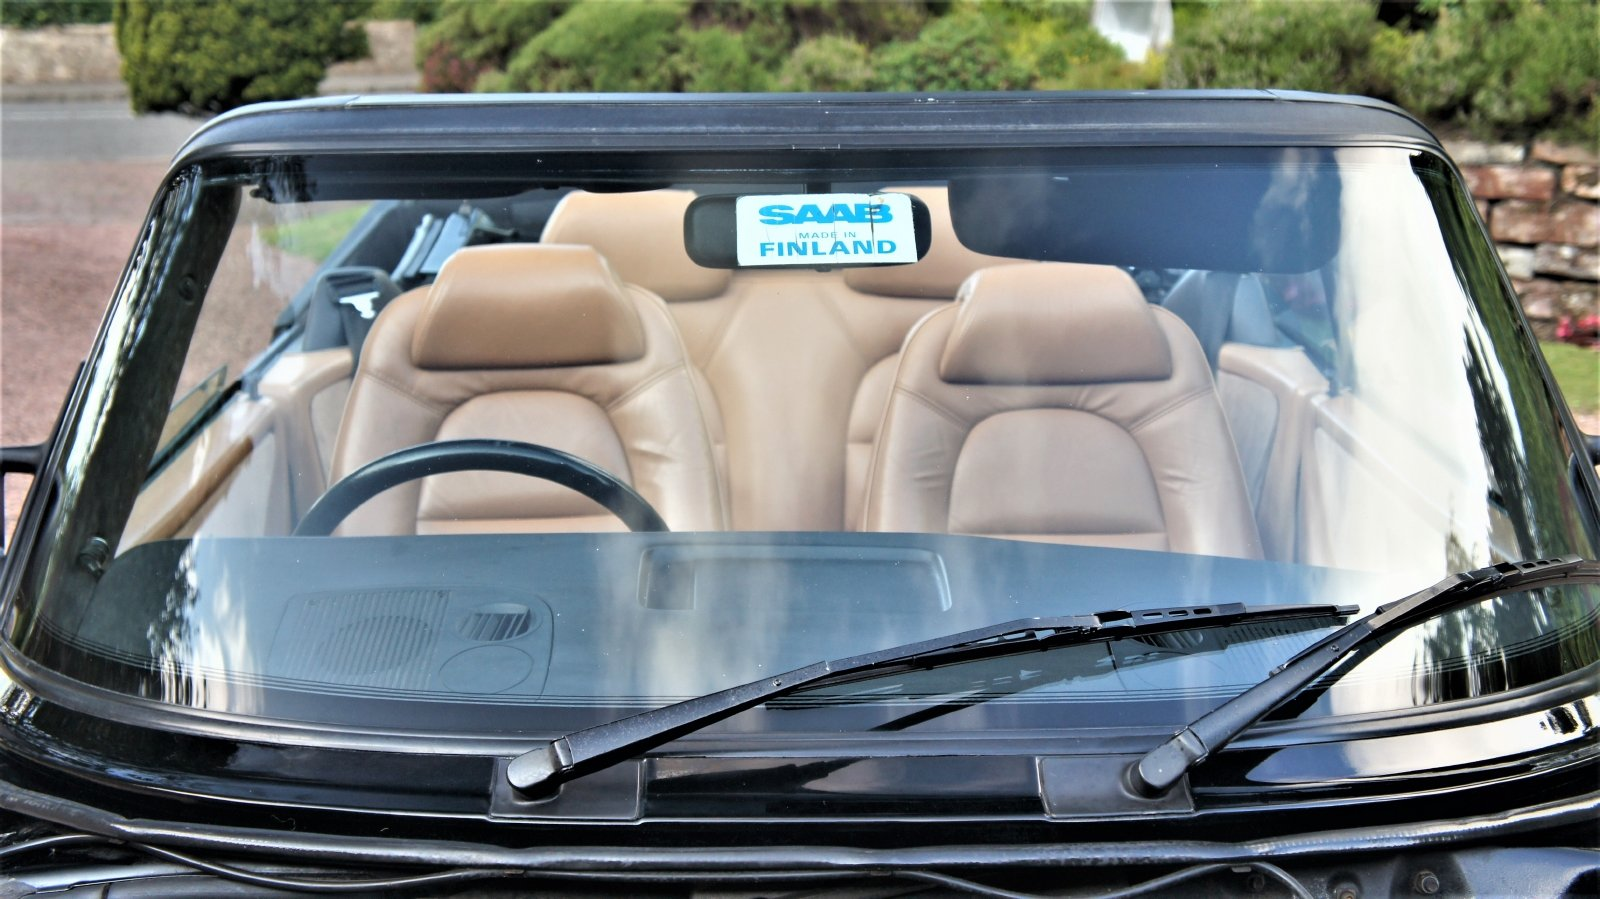 1987 SAAB 900 16 VALVE TURBO CONVERTIBLE - 74000 MILES SOLD (picture 5 of 6)